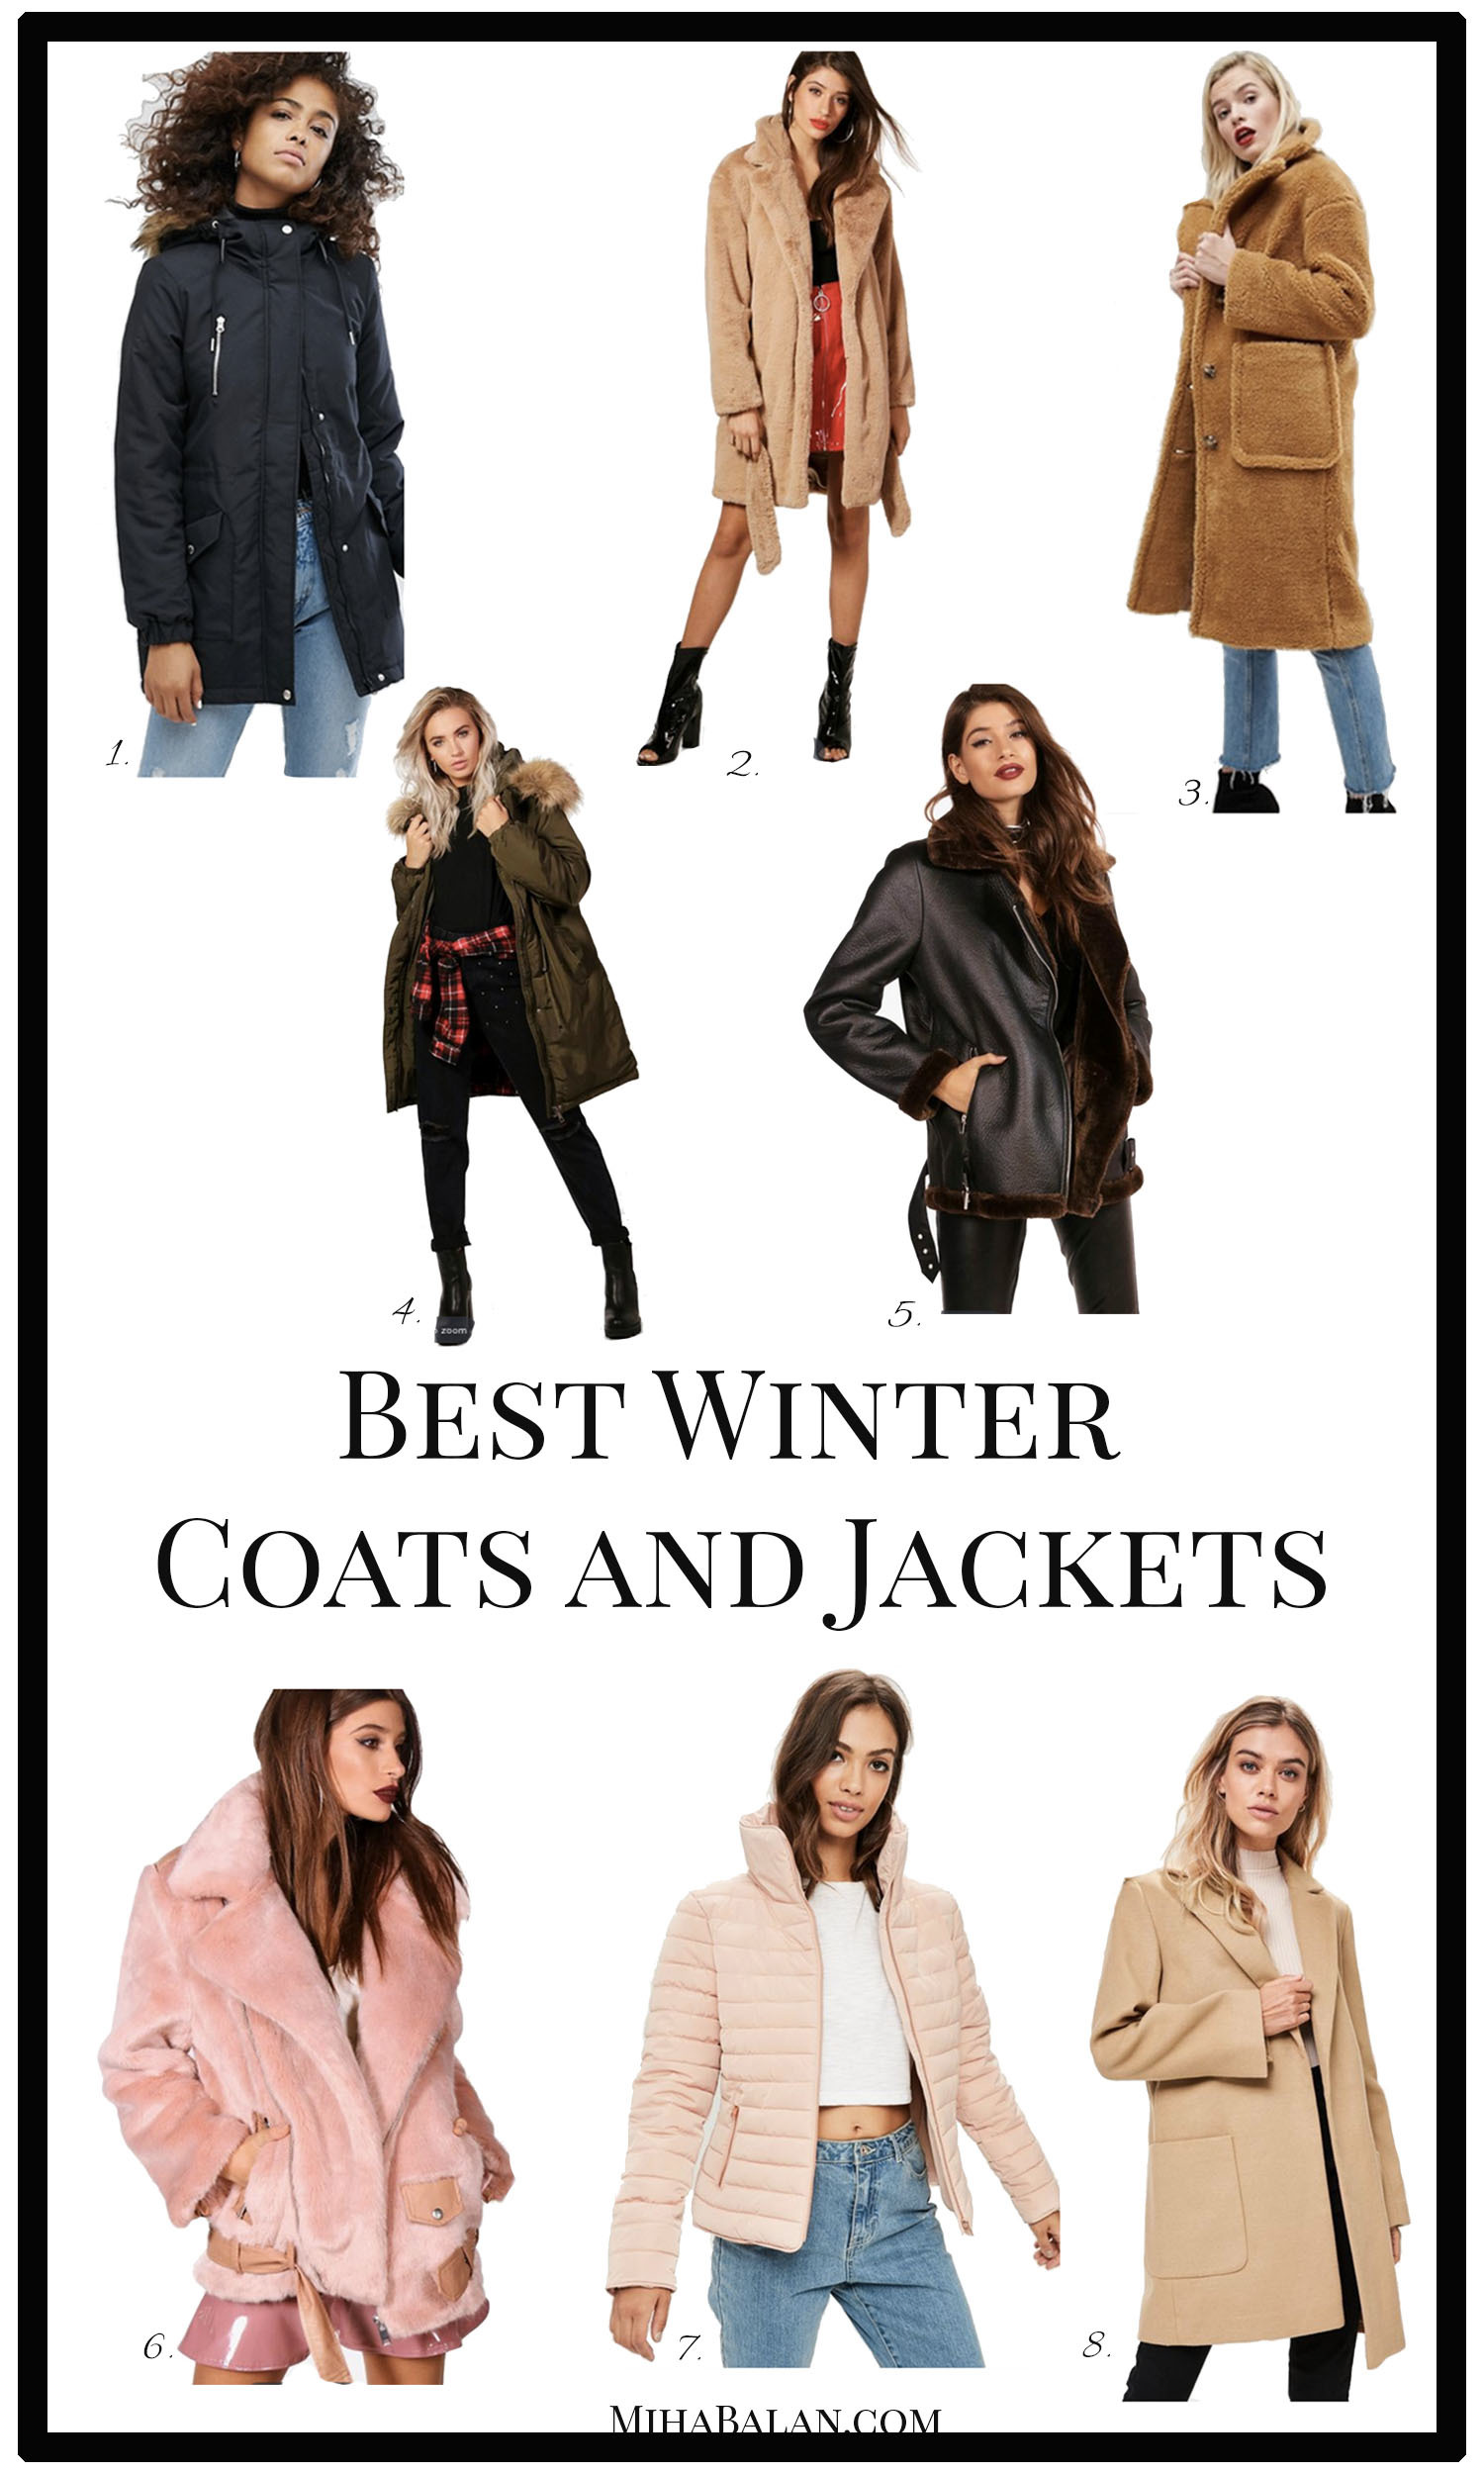 best winter coats and jacket, 2017- 2018